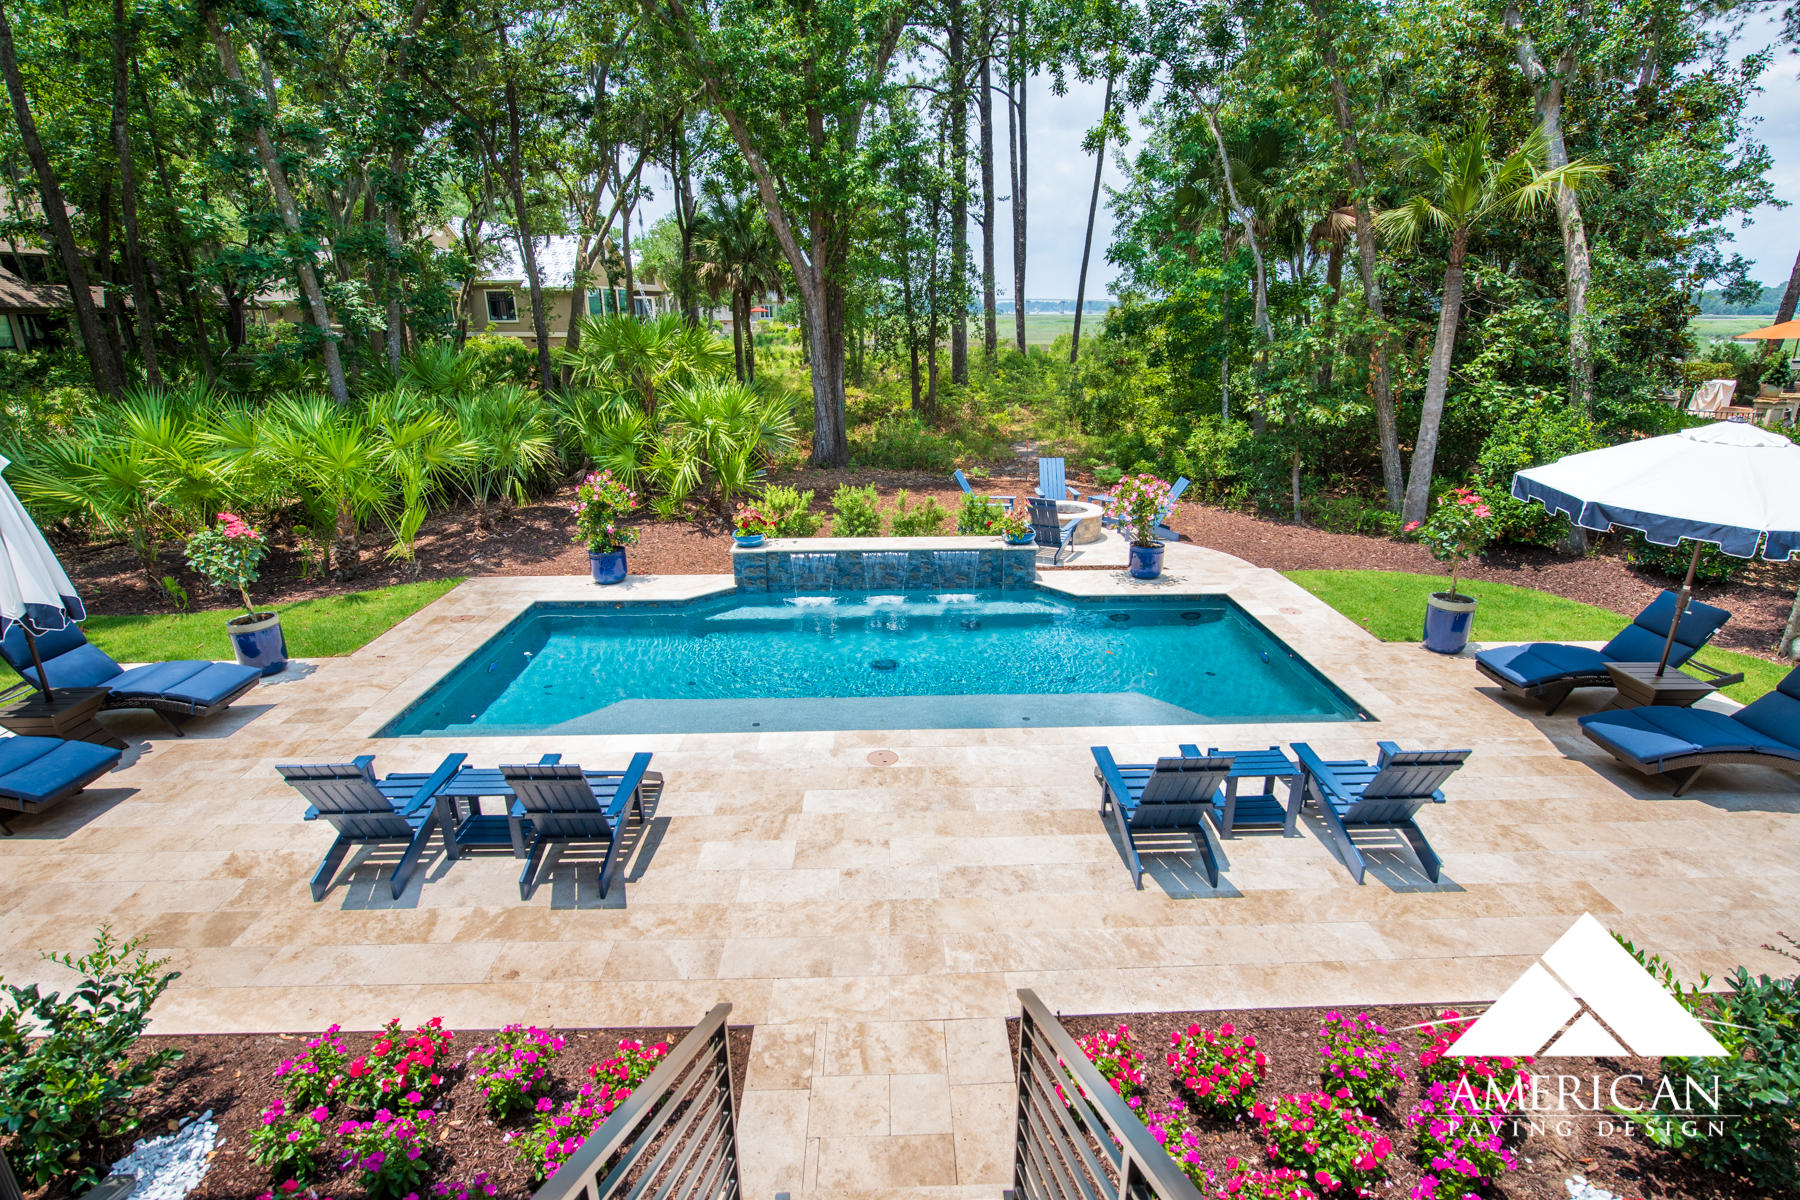 Looking to create an oasis in your backyard? Remodeling your pool deck with Travertine will make you feel like your on an island all year around!